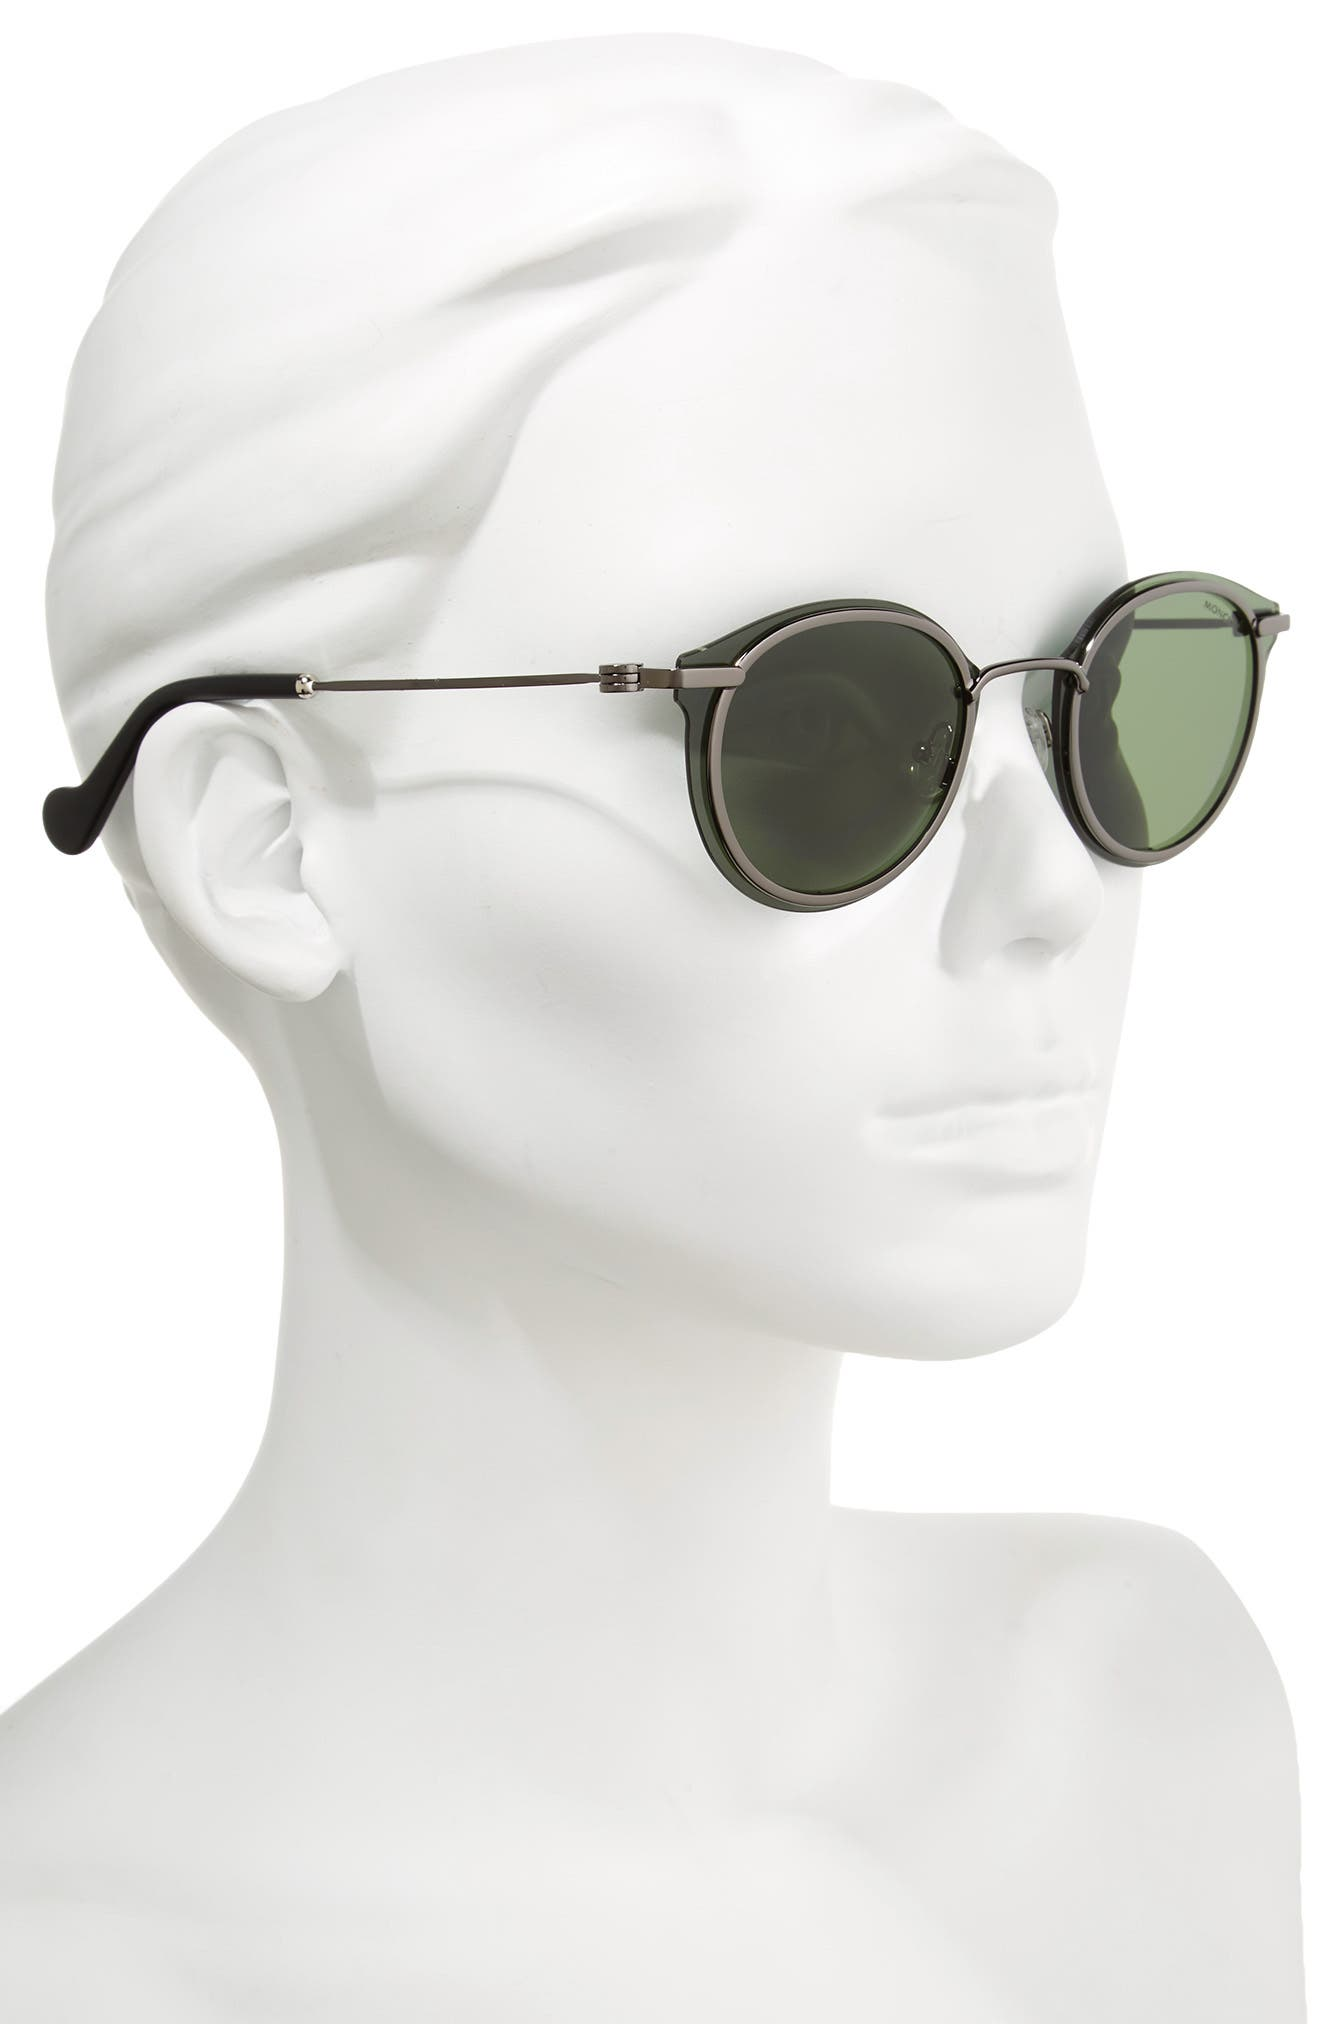 58mm Mirrored Round Sunglasses,                             Alternate thumbnail 2, color,                             Shiny Gunmetal/ Green